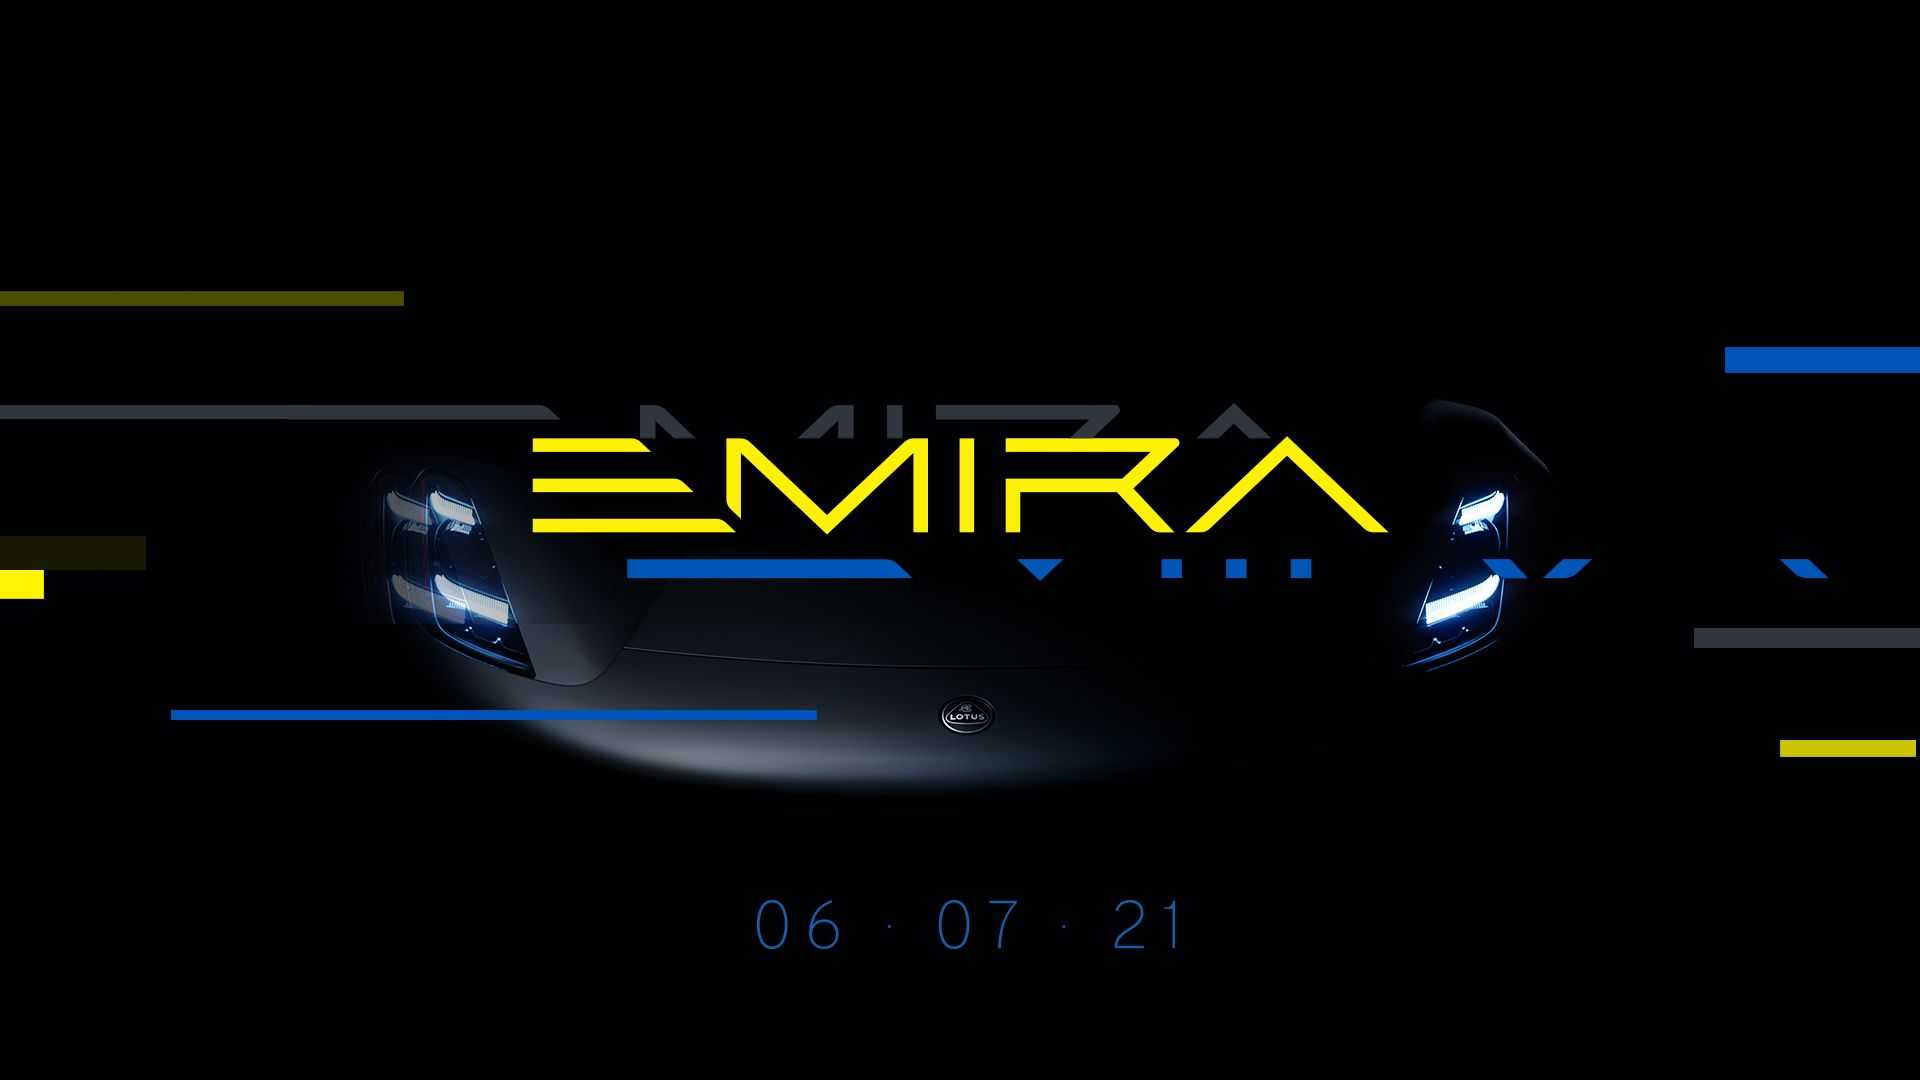 Chapman Would Be Proud: The Upcoming Lotus Emira Will Capture Power, Lightness, and Performance